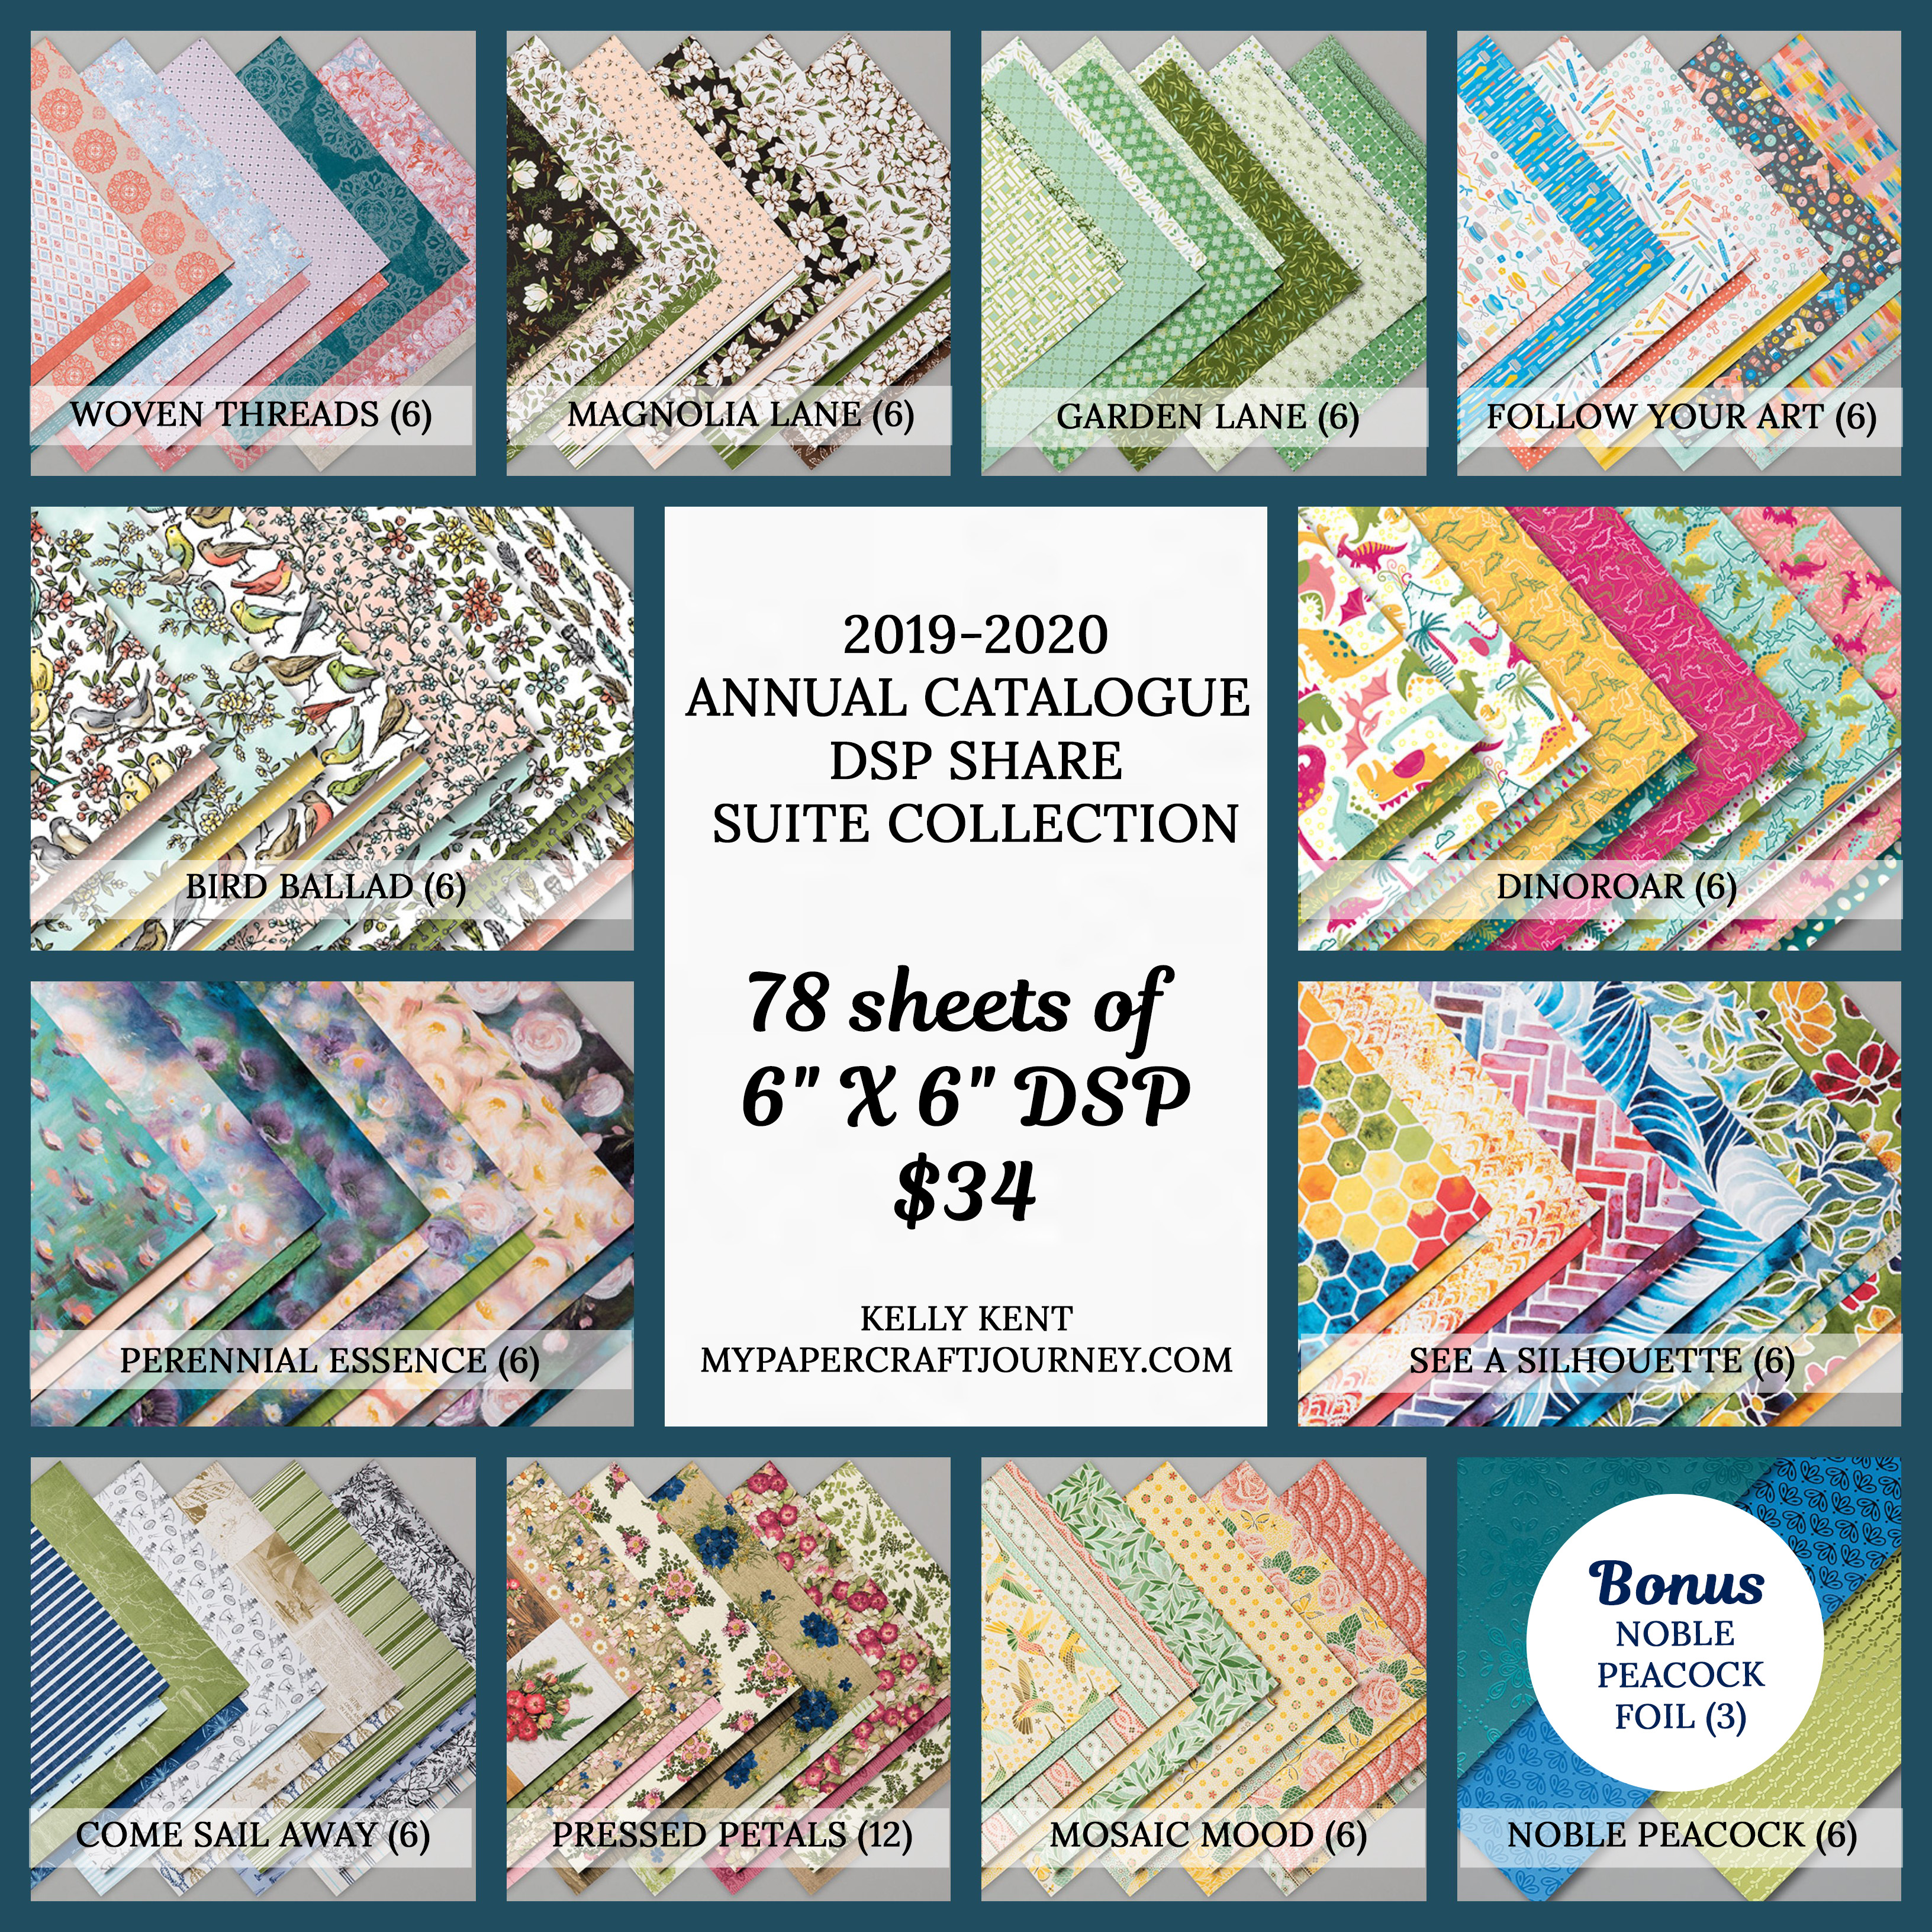 2019-20 Annual Catalogue DSP Share Suites | kelly kent